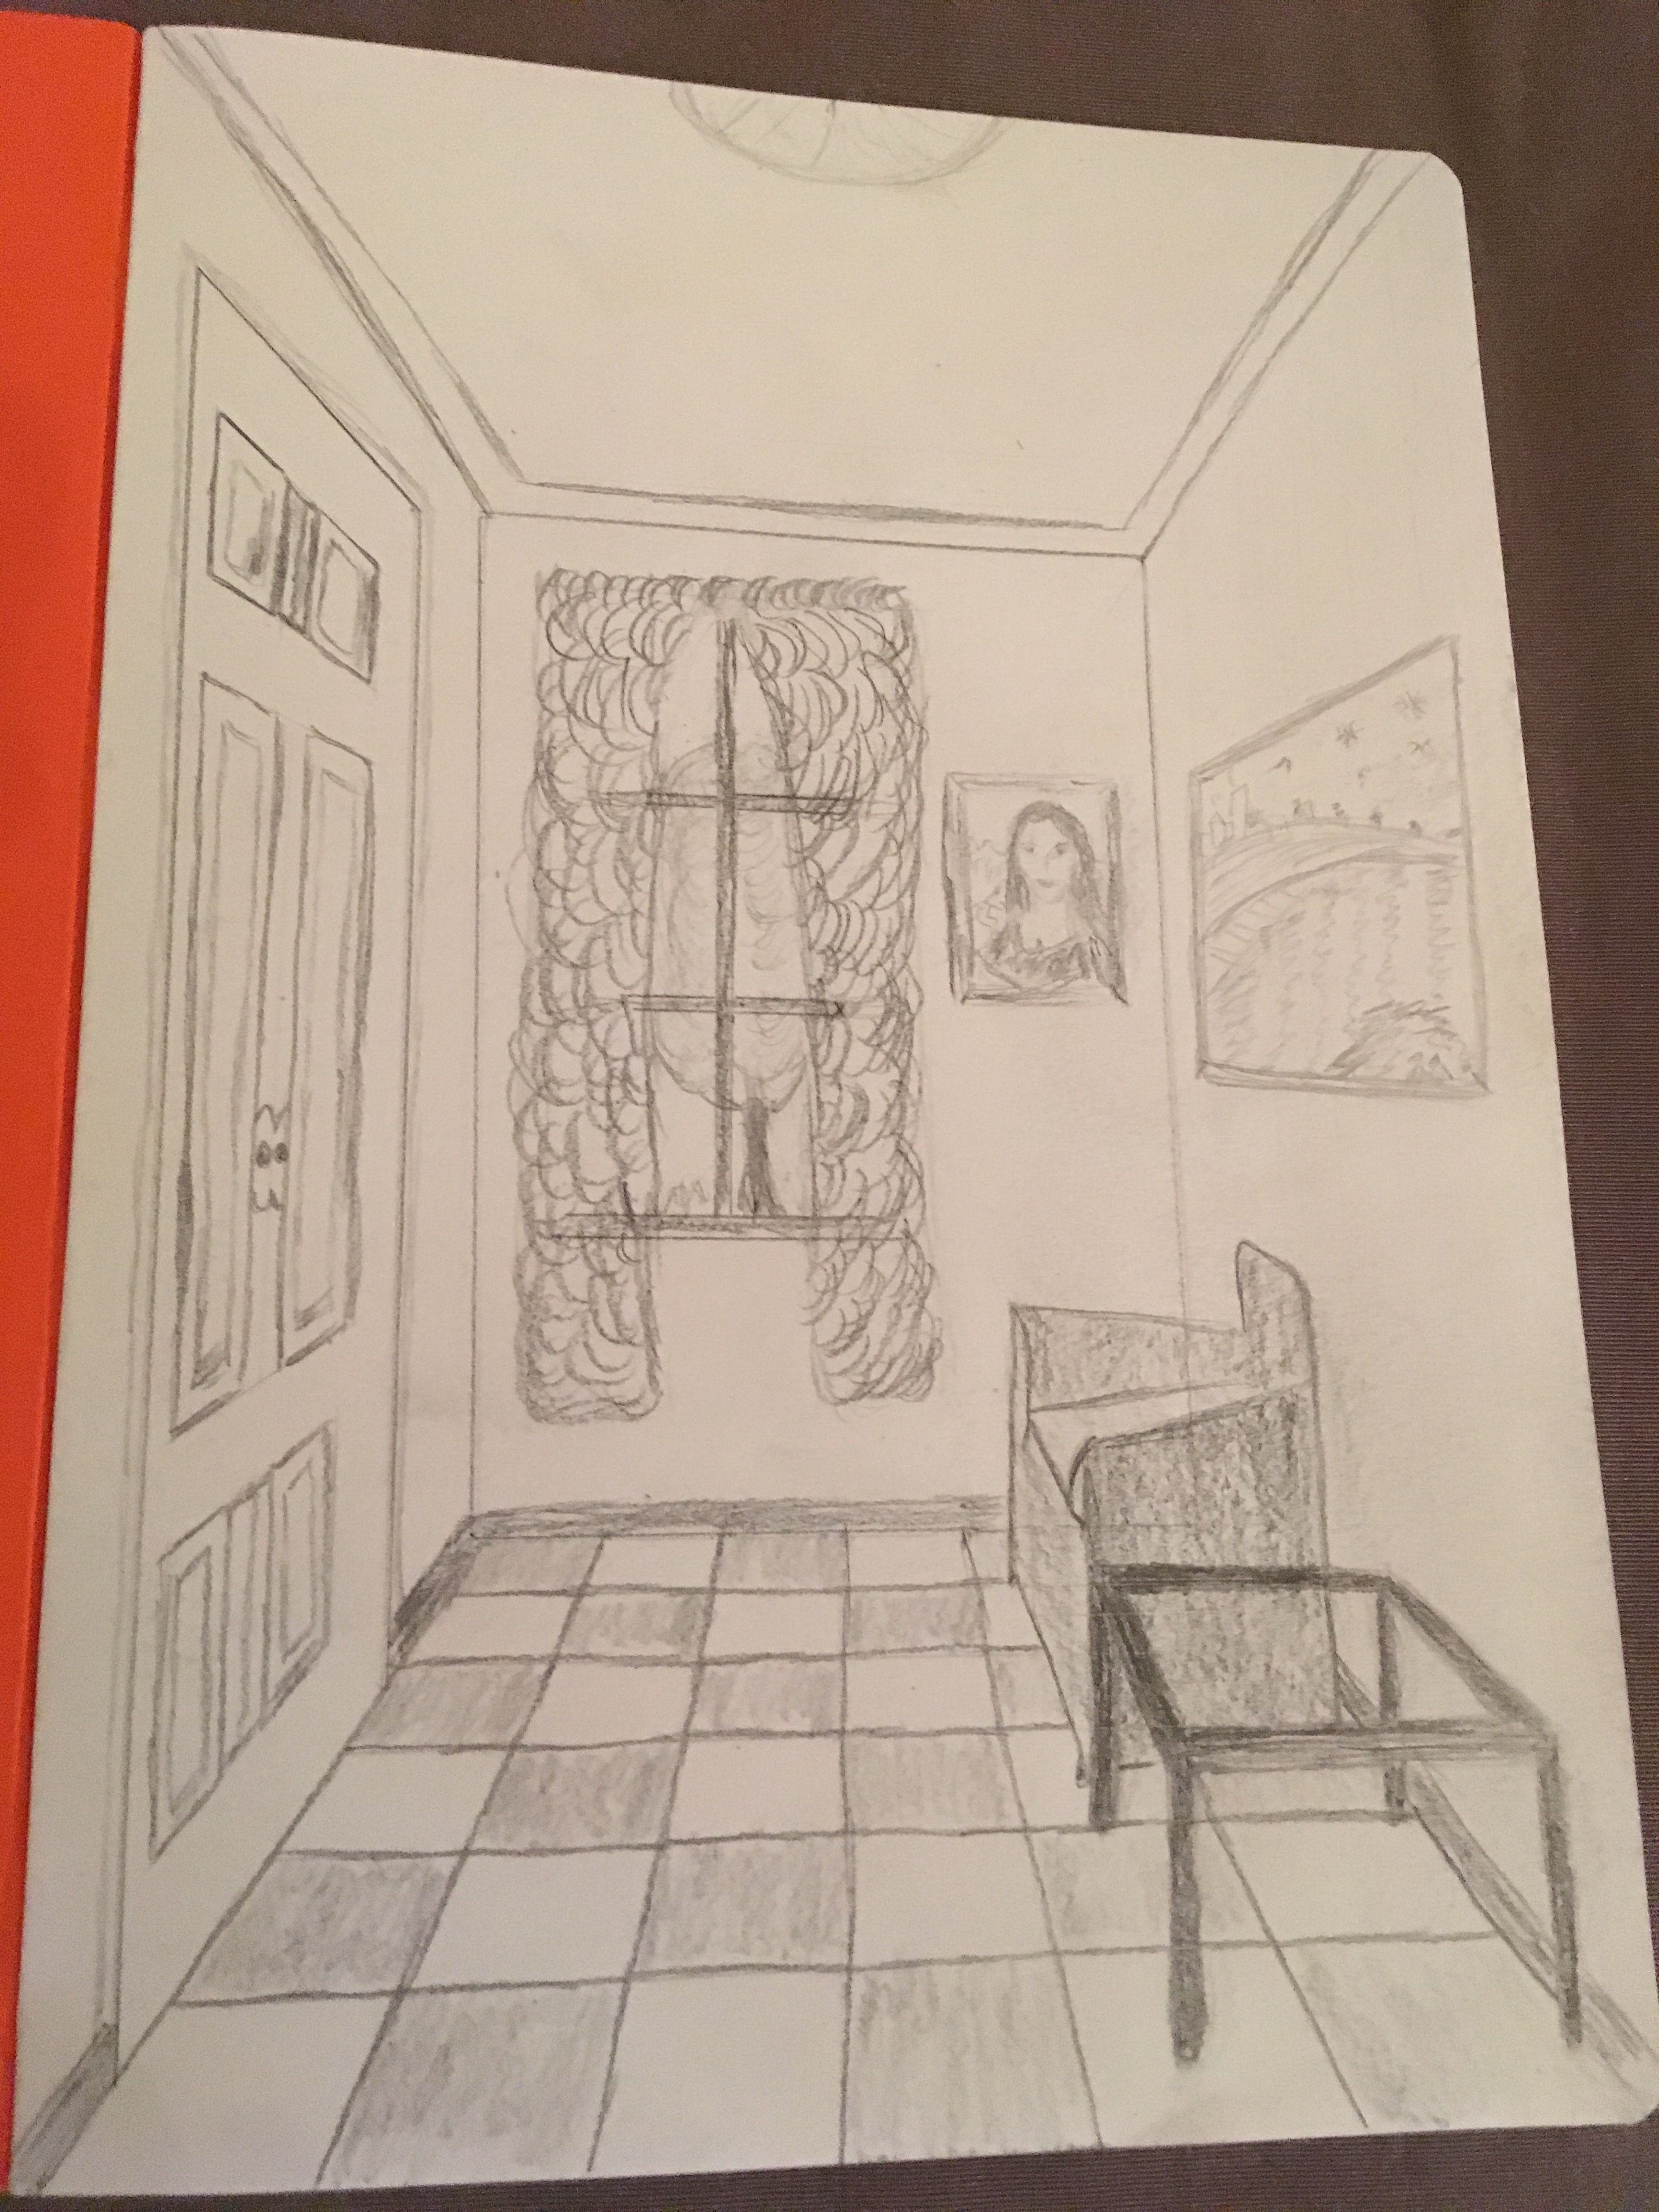 One Perspective Drawing Room: One Point Perspective Drawing Of Room With Art Pieces Seen